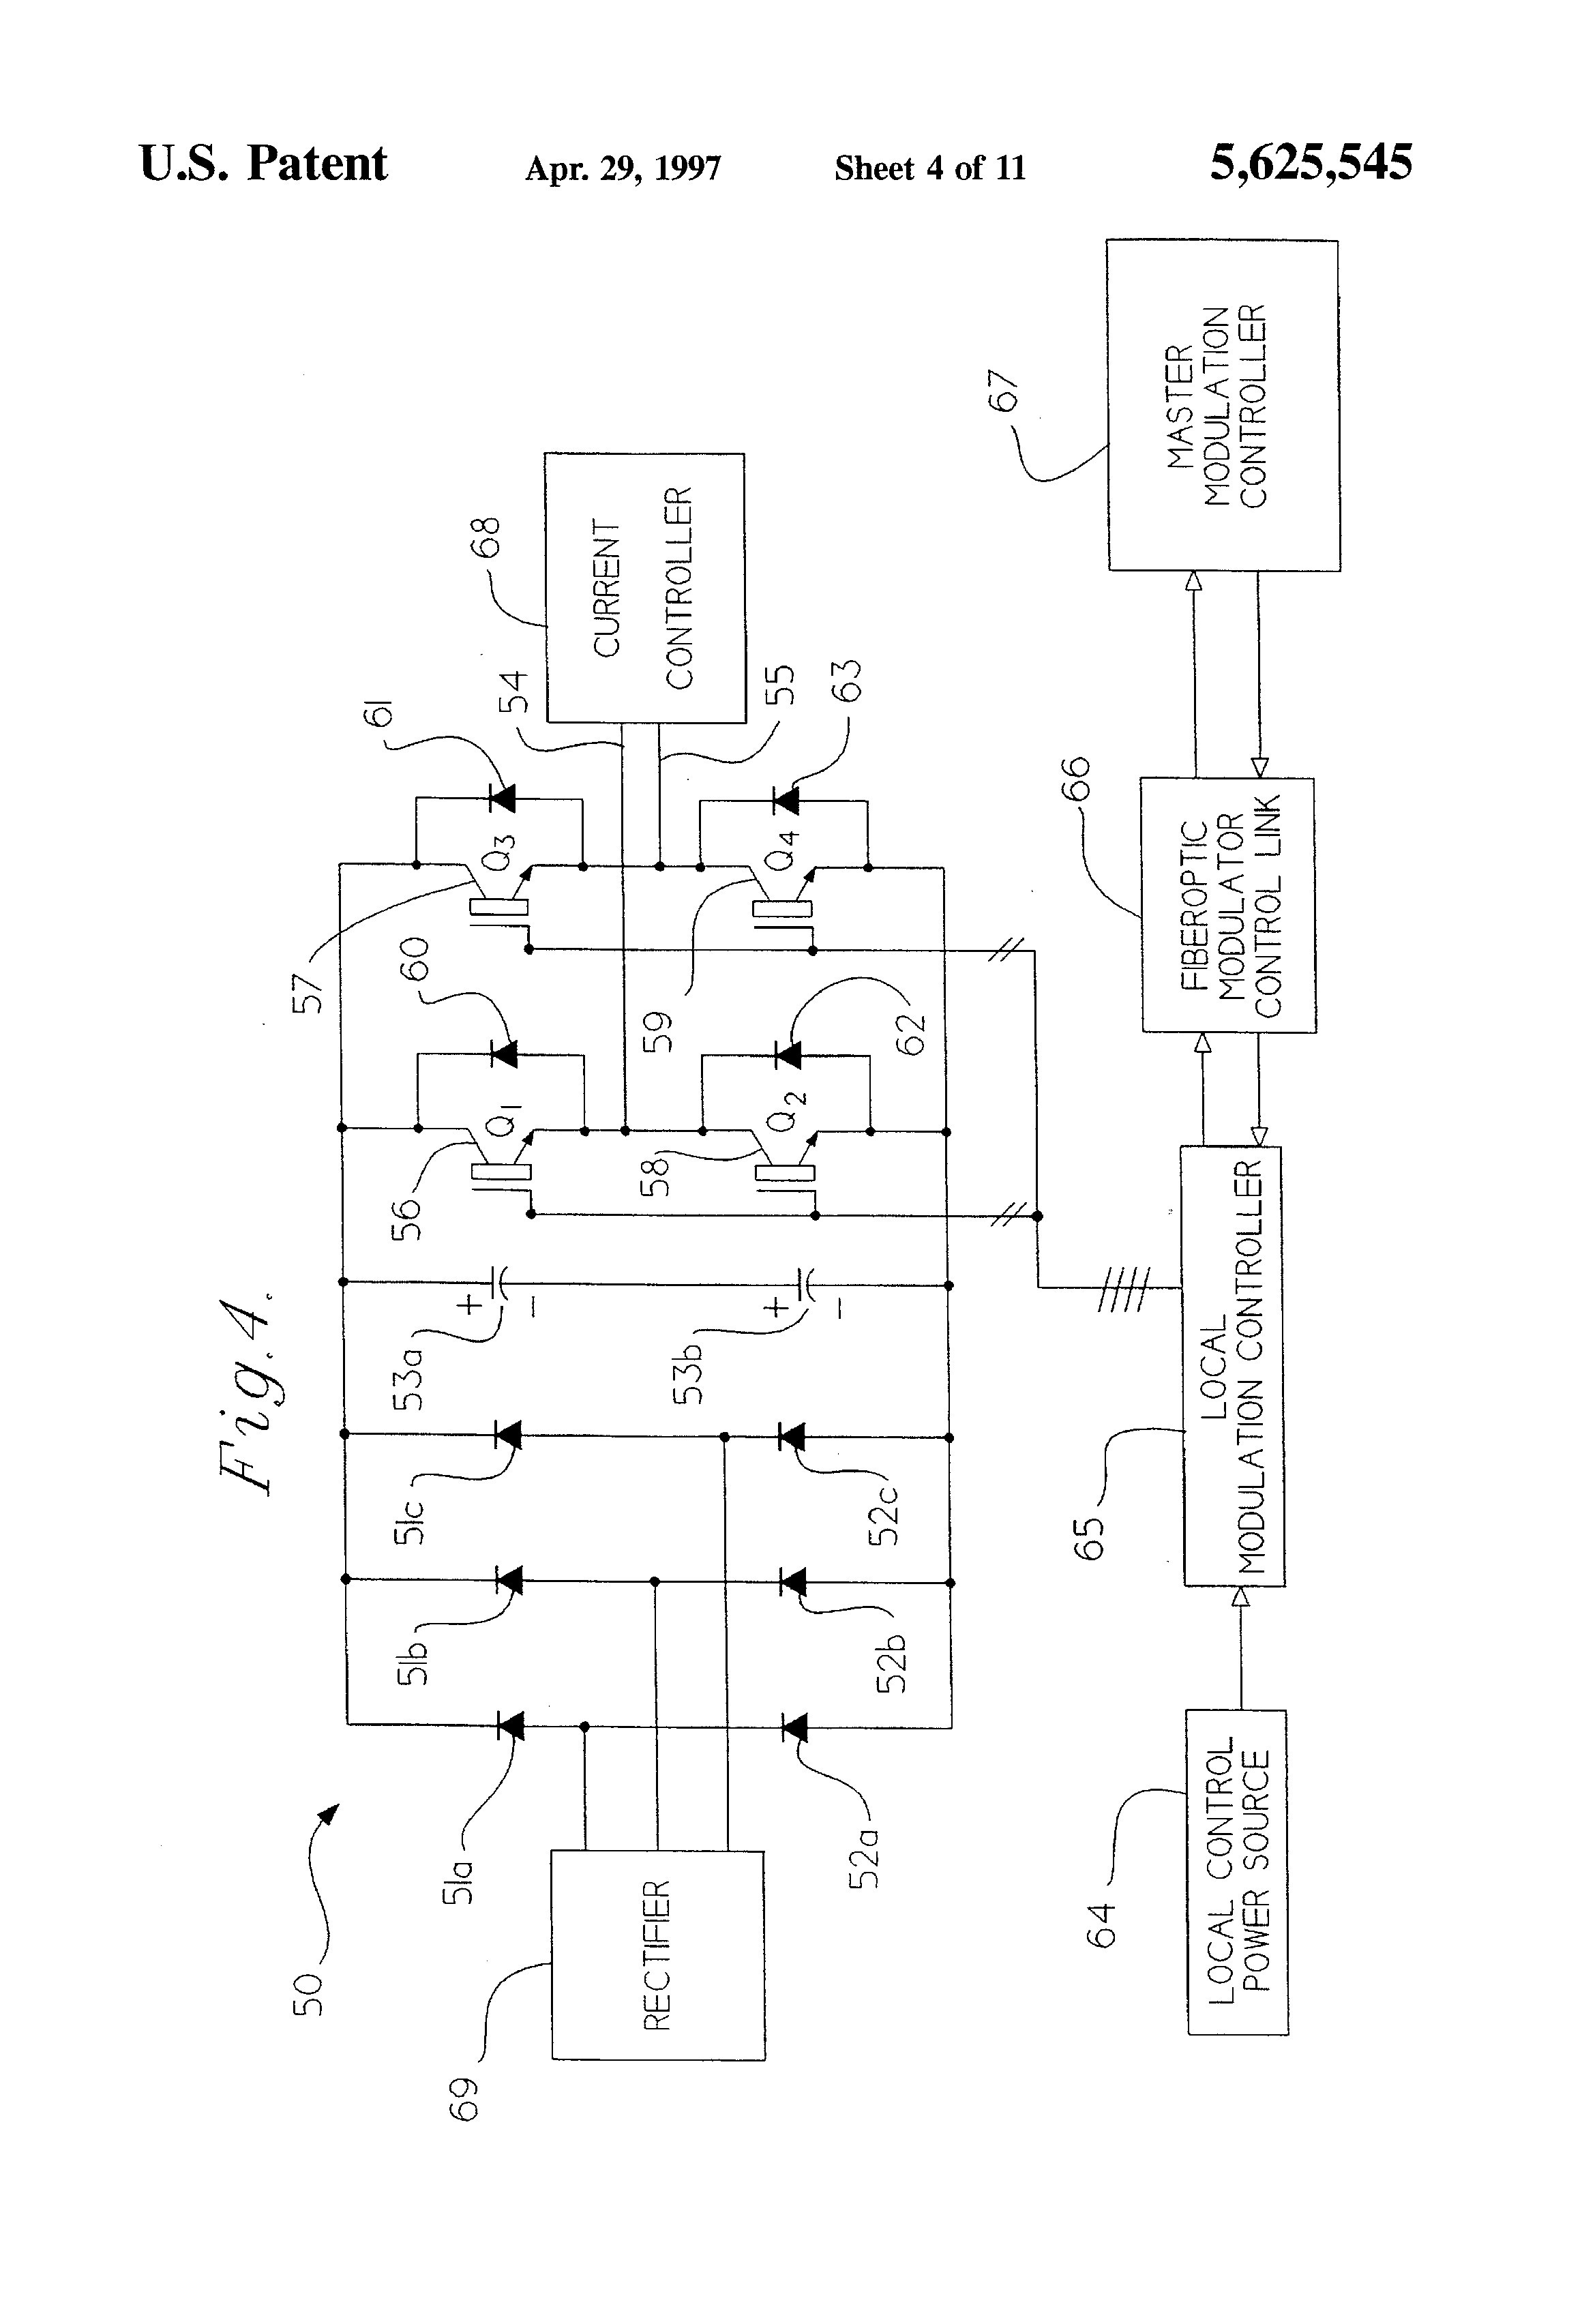 Westinghouse Motor Wiring Diagram Schematics For Teco Data Motorssite Org Internal Ceiling Fan And Light